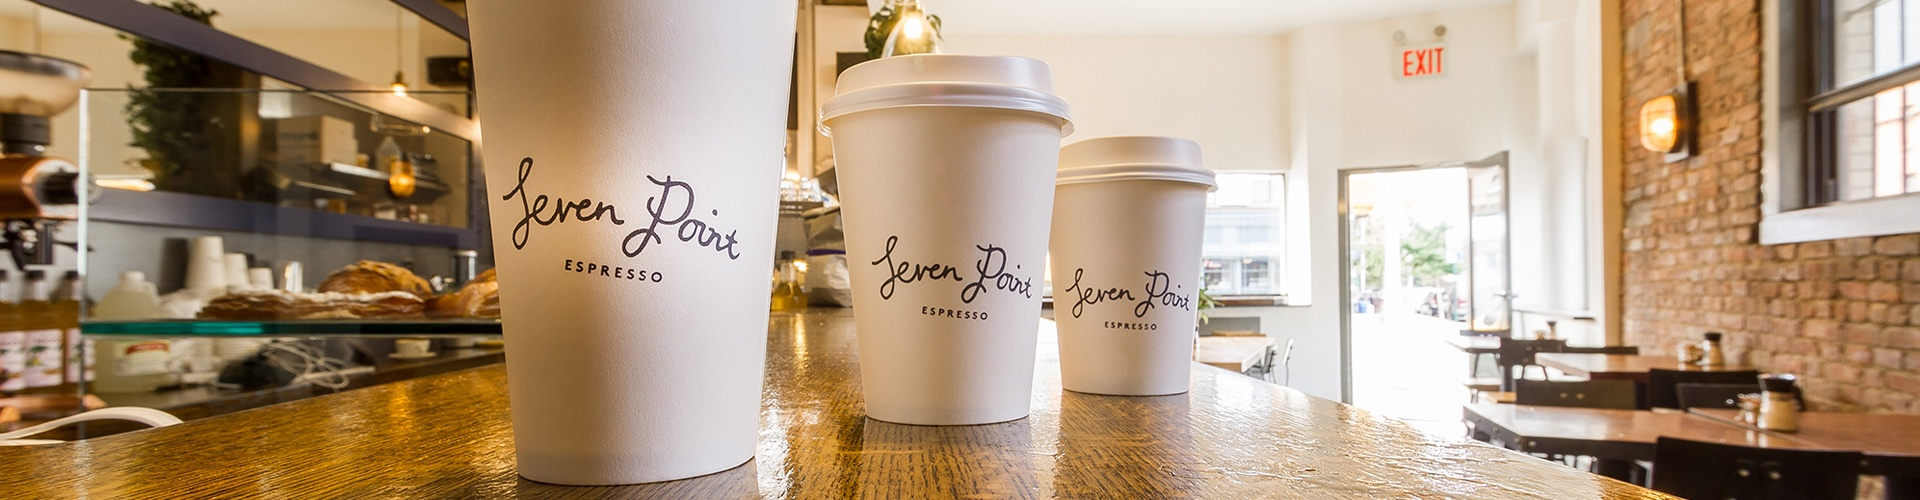 The Renovation: Seven Point Espresso – Australian Coffee comes to Brooklyn